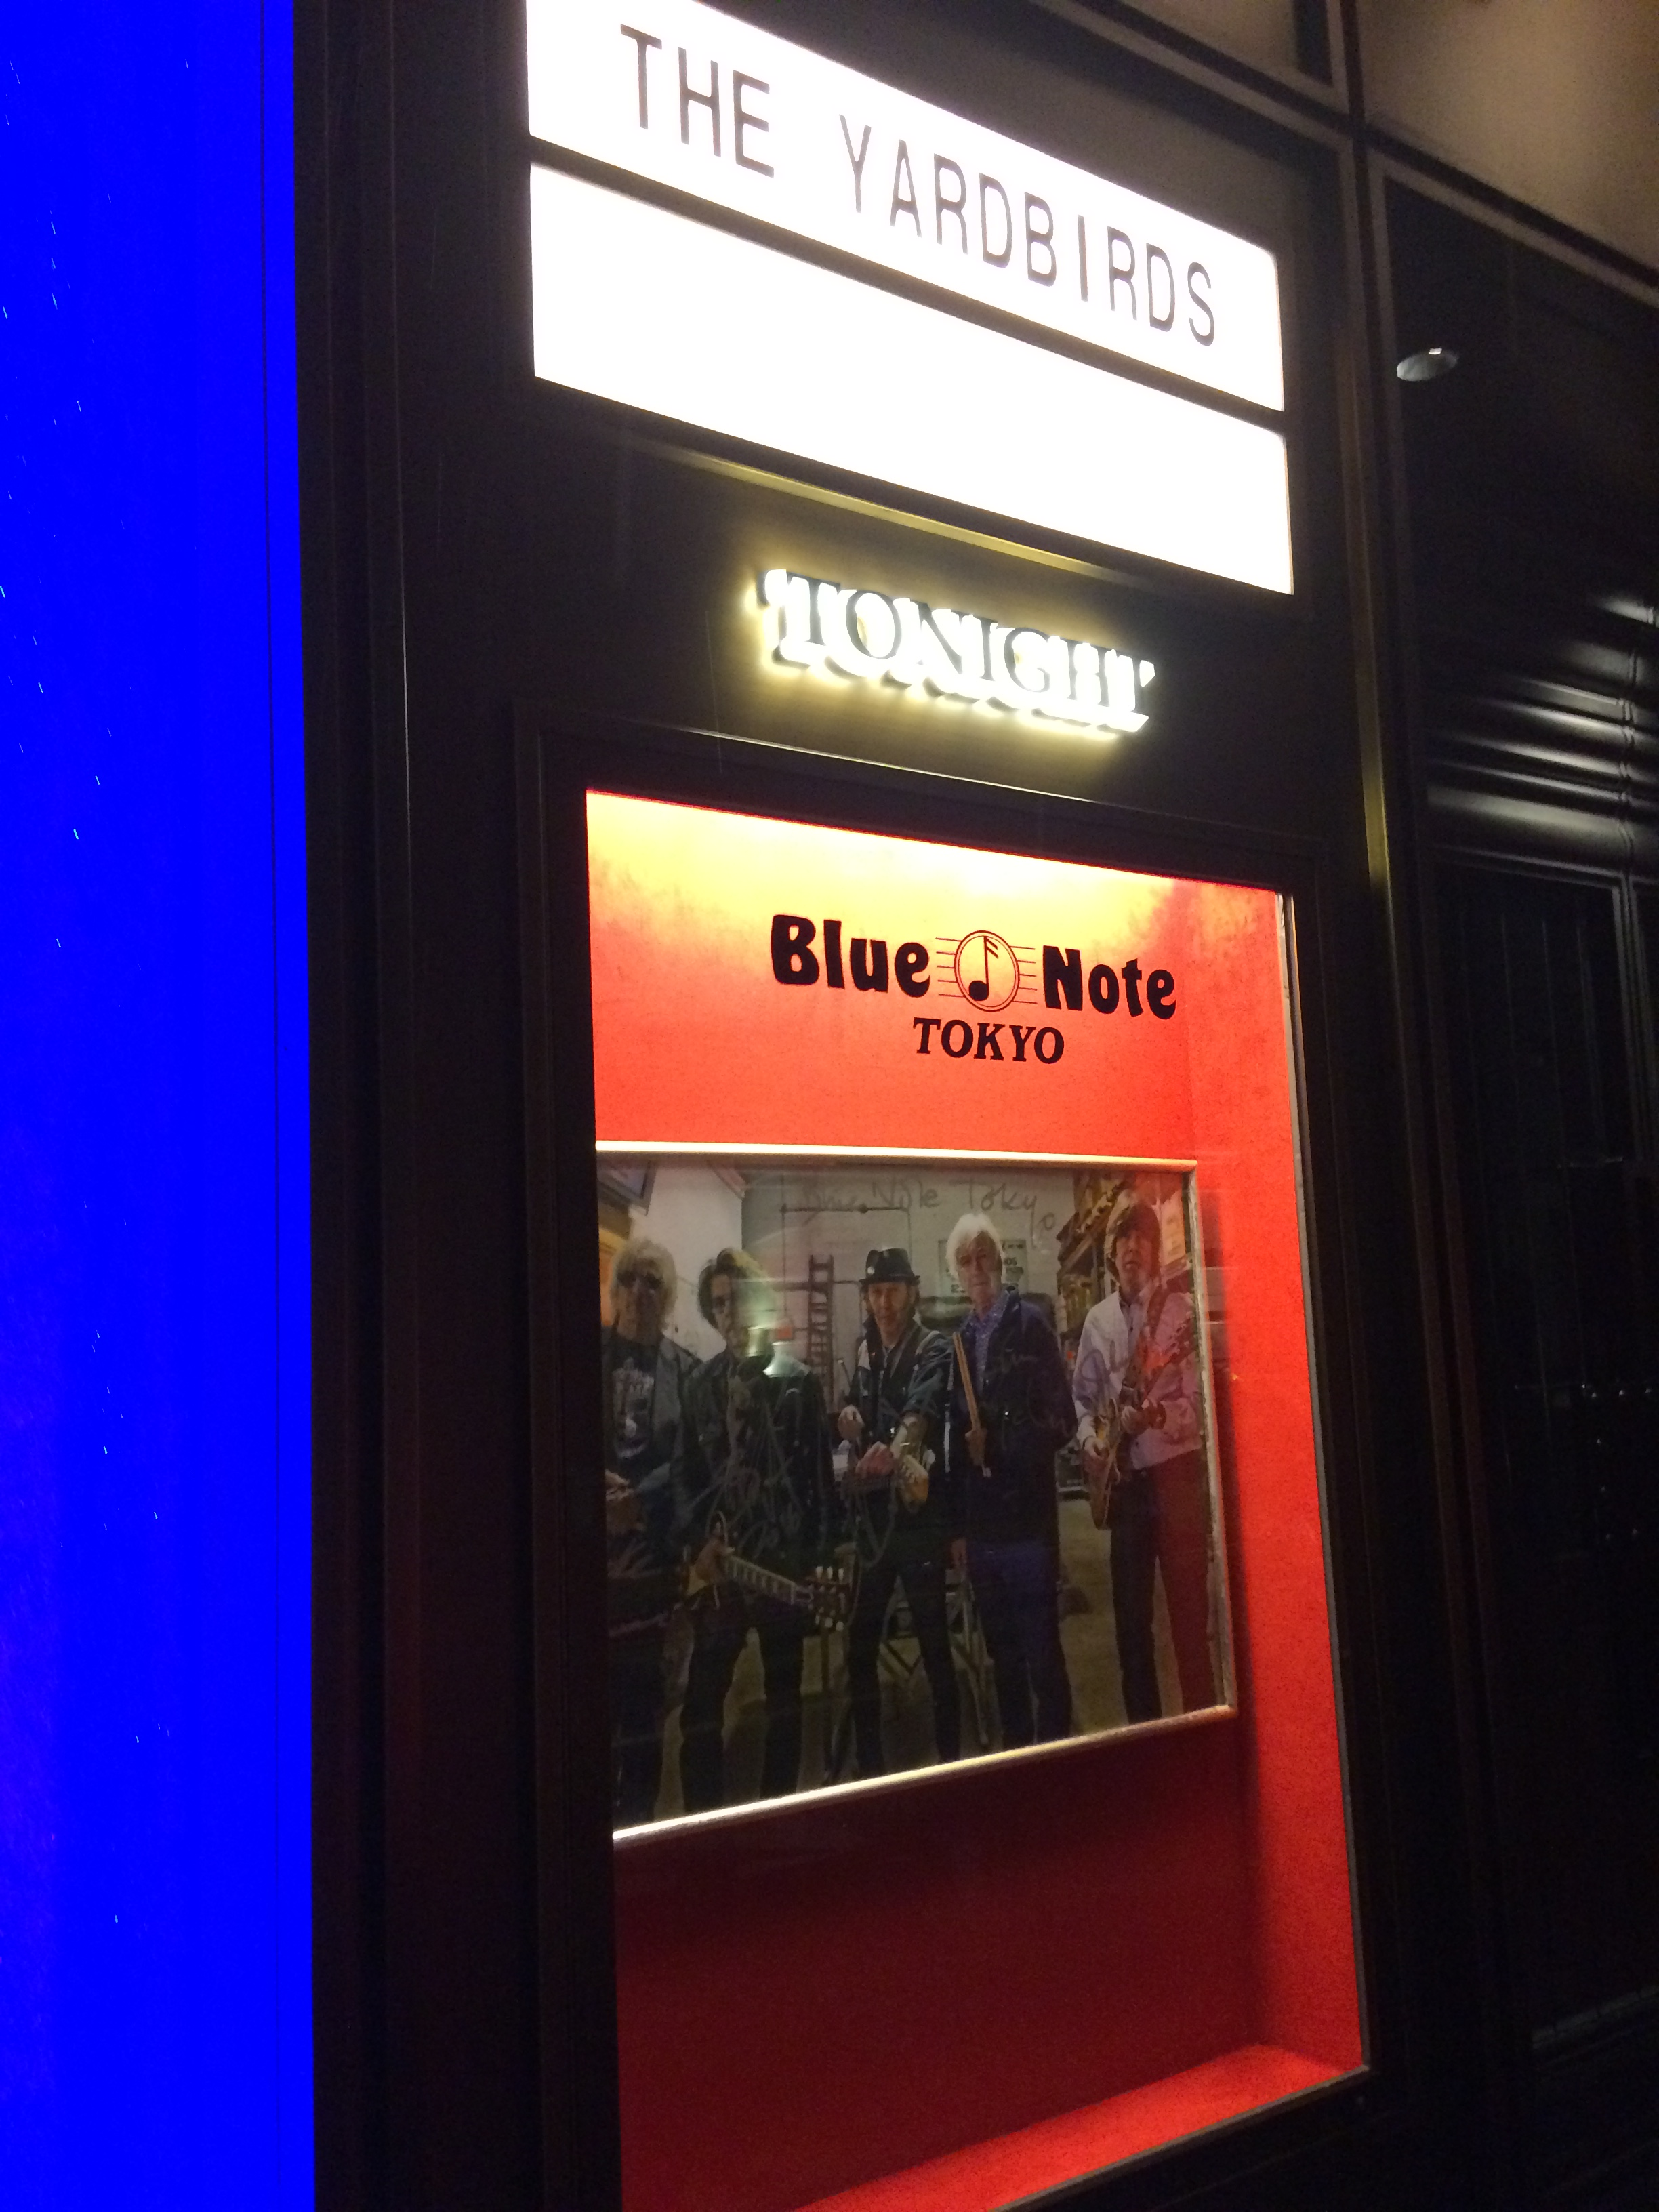 Yardbirds2016-10-25BlueNoteTokyoJapan.JPG